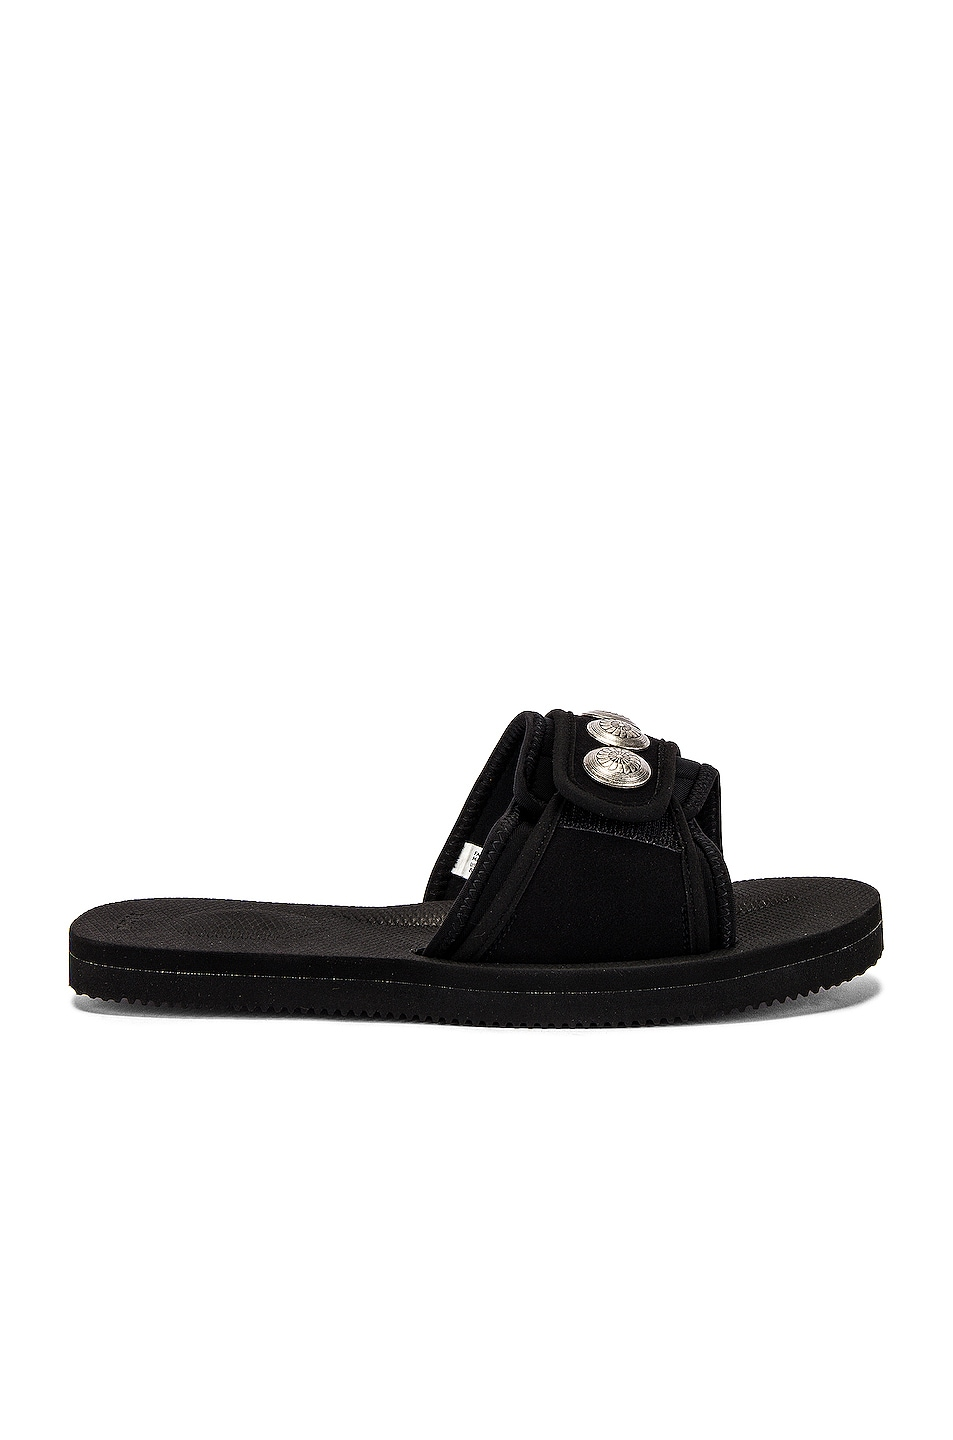 Image 2 of JOHN ELLIOTT x Blackmeans x Suicoke Lotus Slide in Black